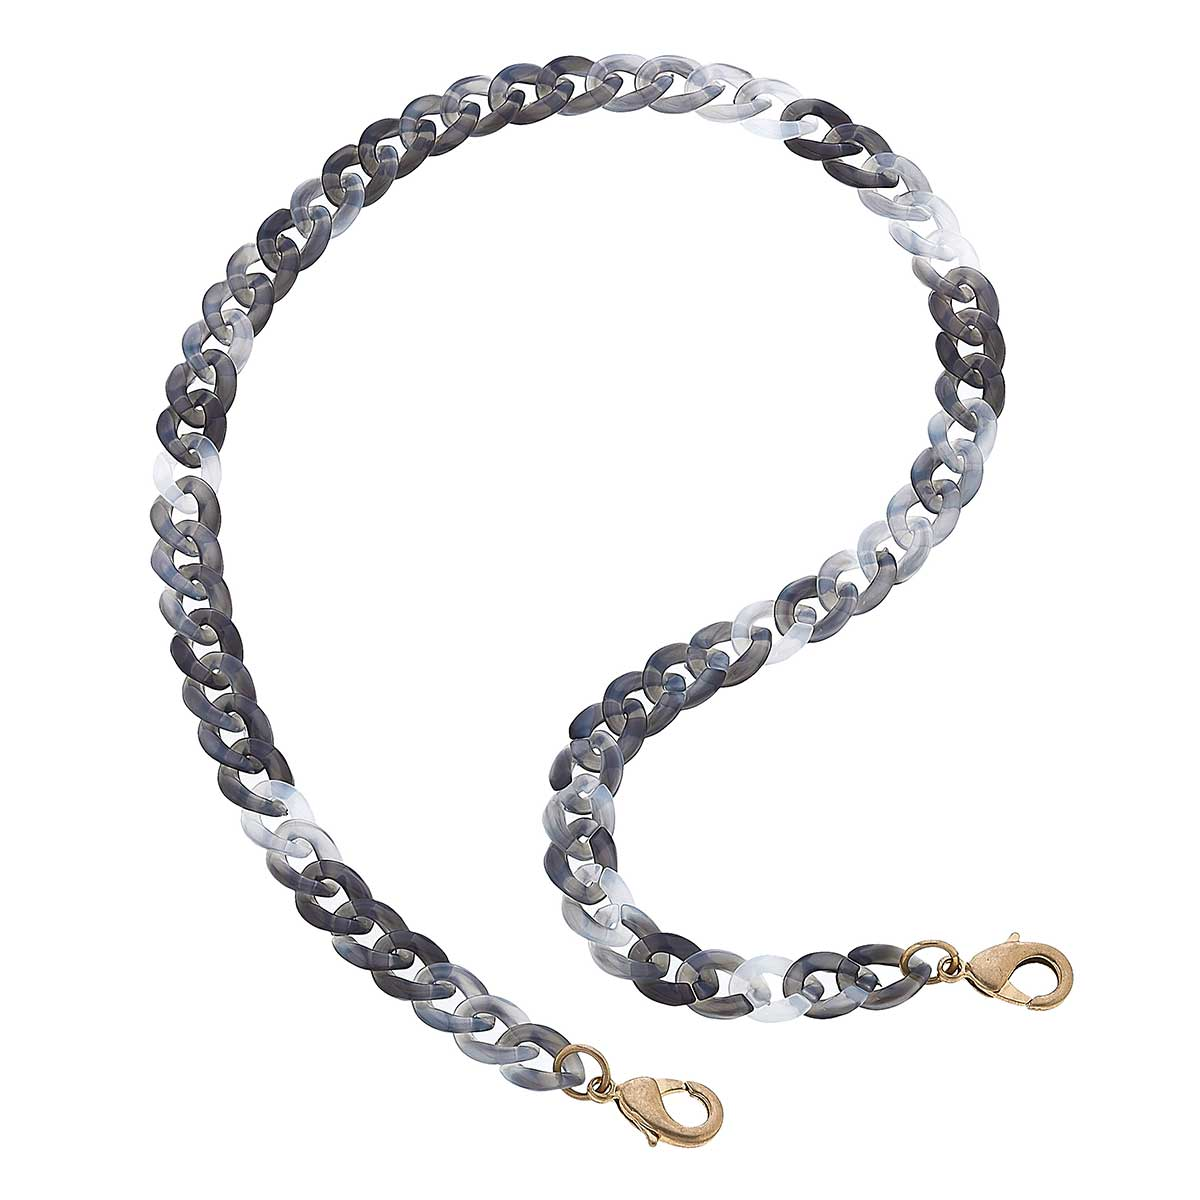 Legacy Resin Curb Chain Mask Necklace in Grey - 20""